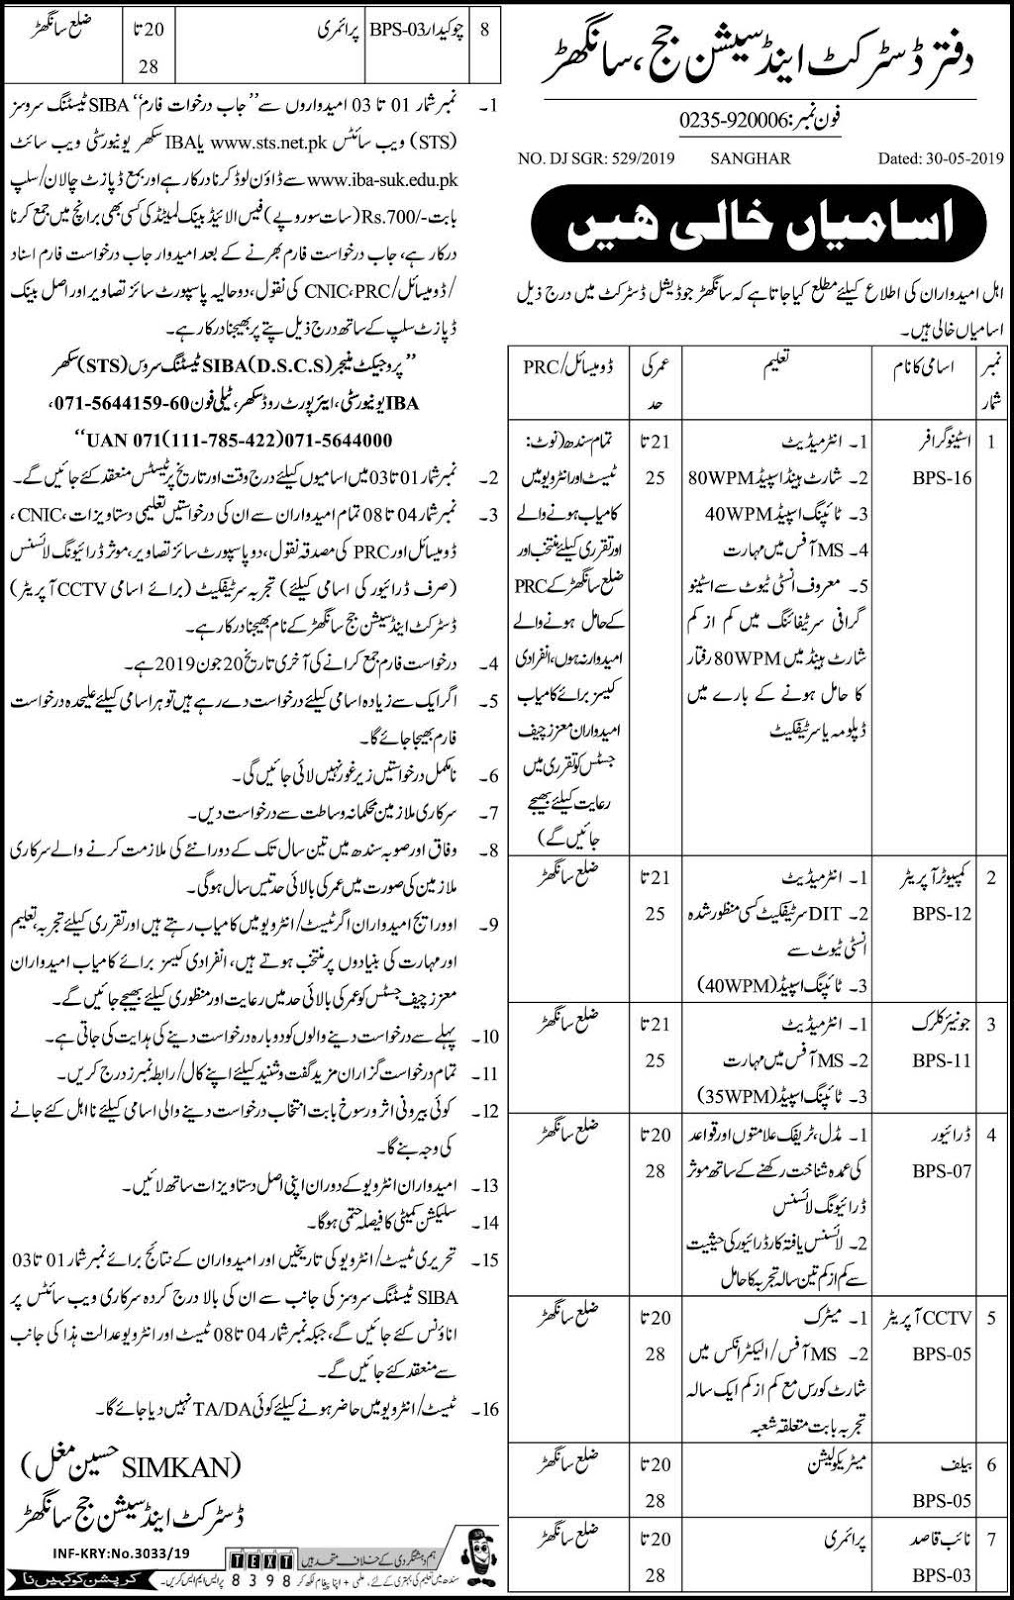 Sanghar june 2019 via STS Jobs